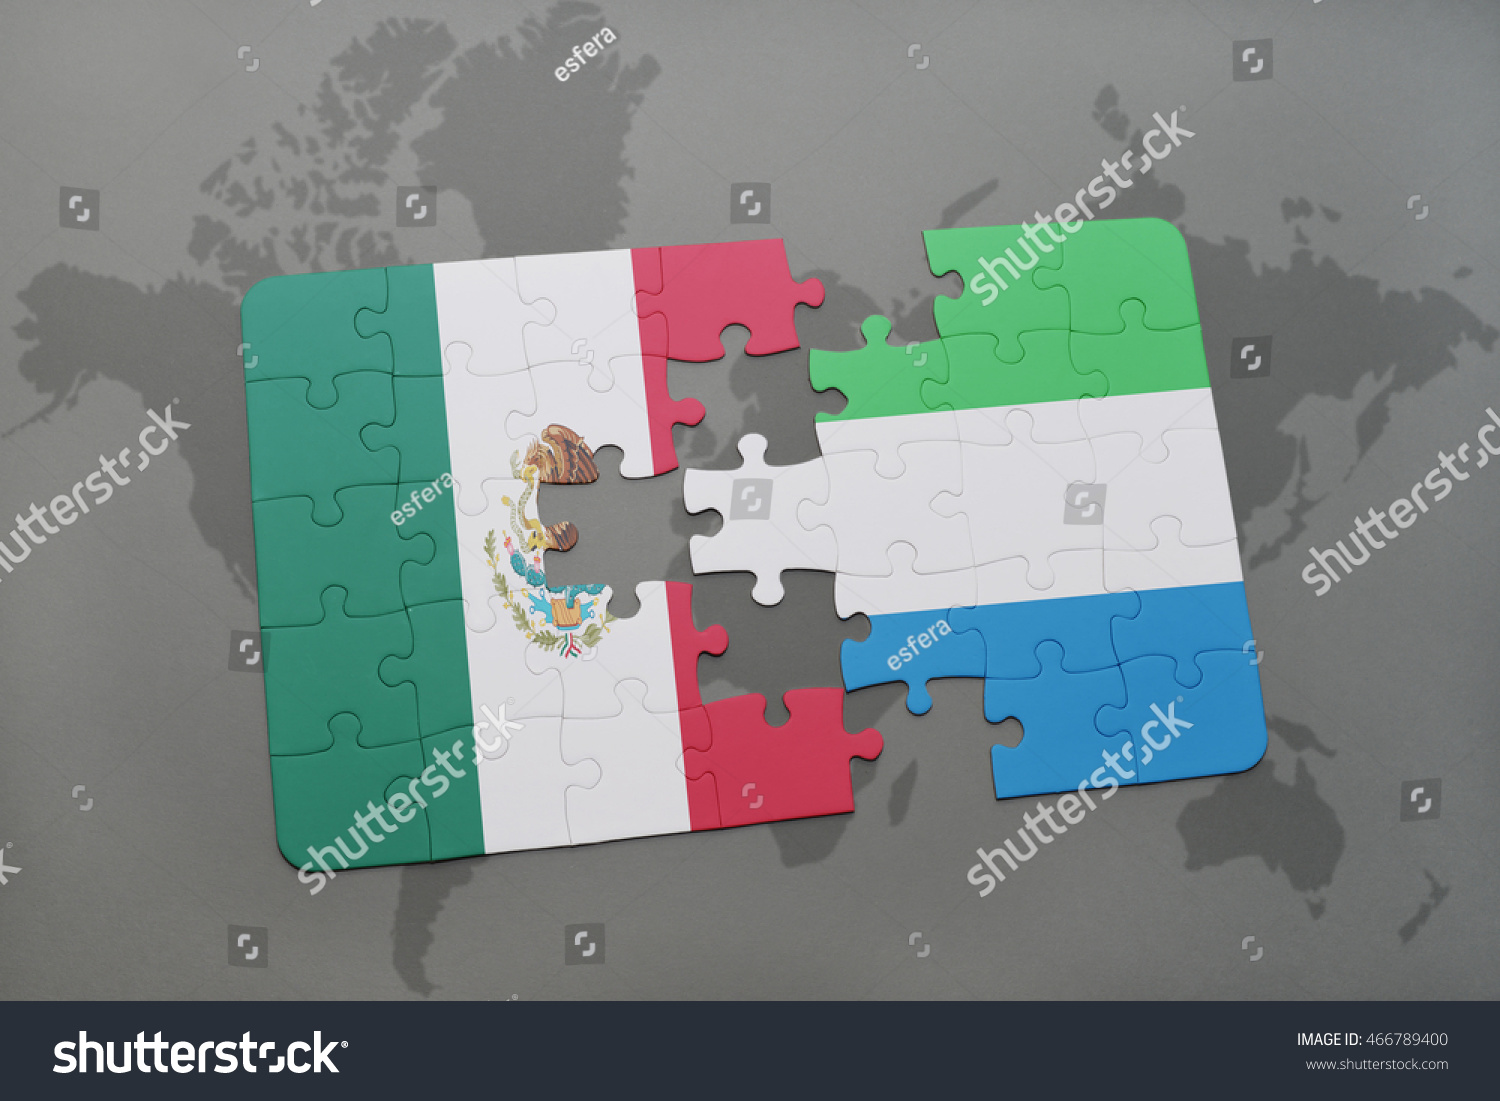 Royalty Free Stock Illustration of Puzzle National Flag Mexico